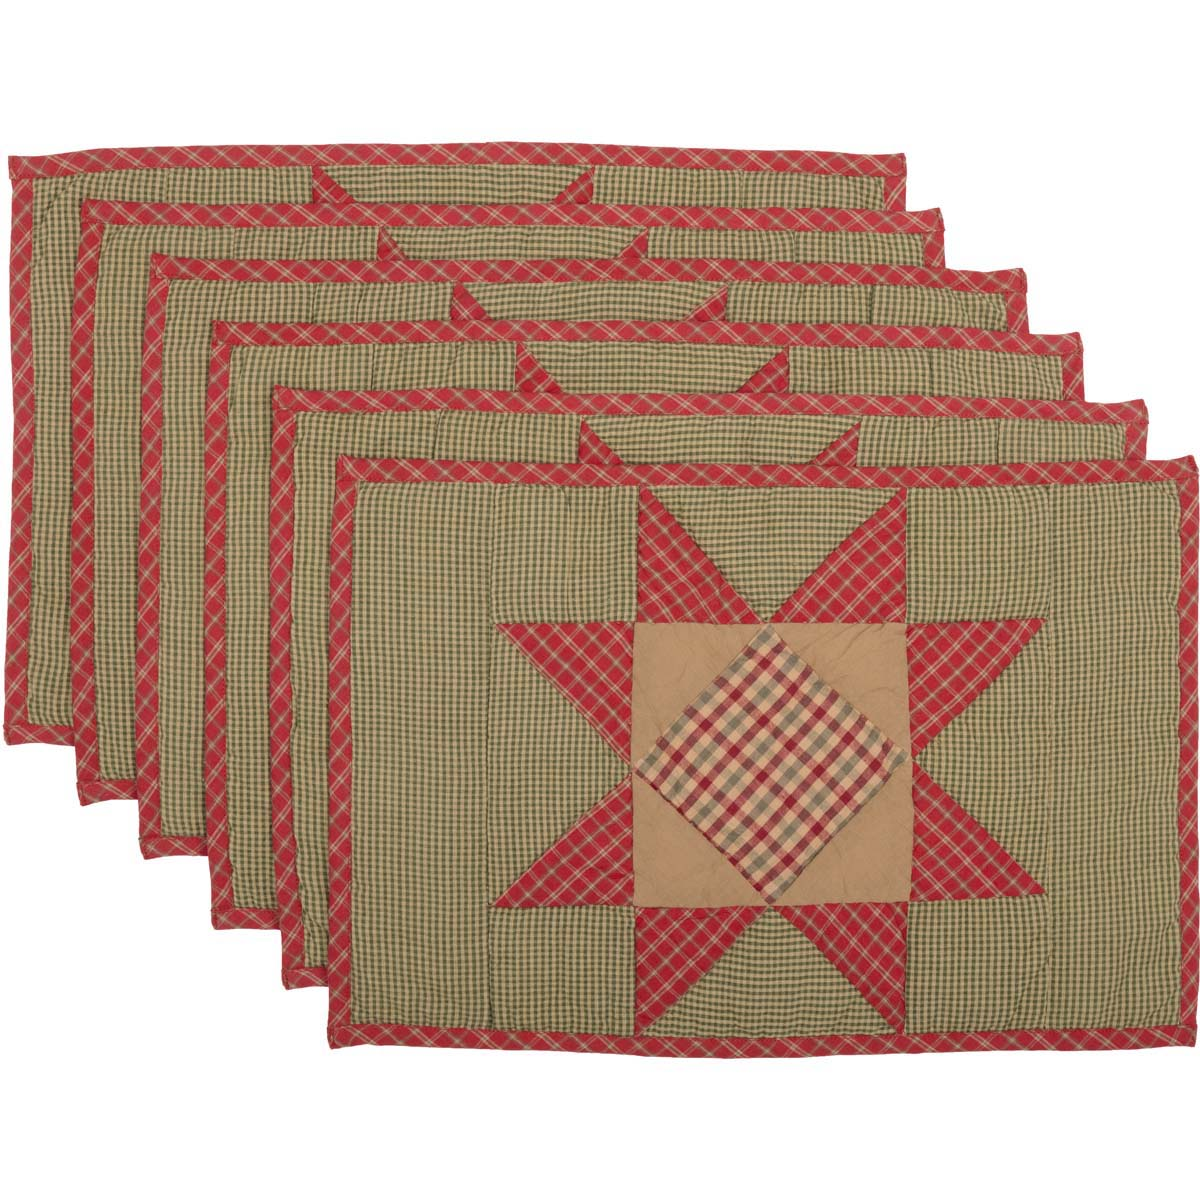 Dolly Star Quilted Placemat Set of 6 12x18